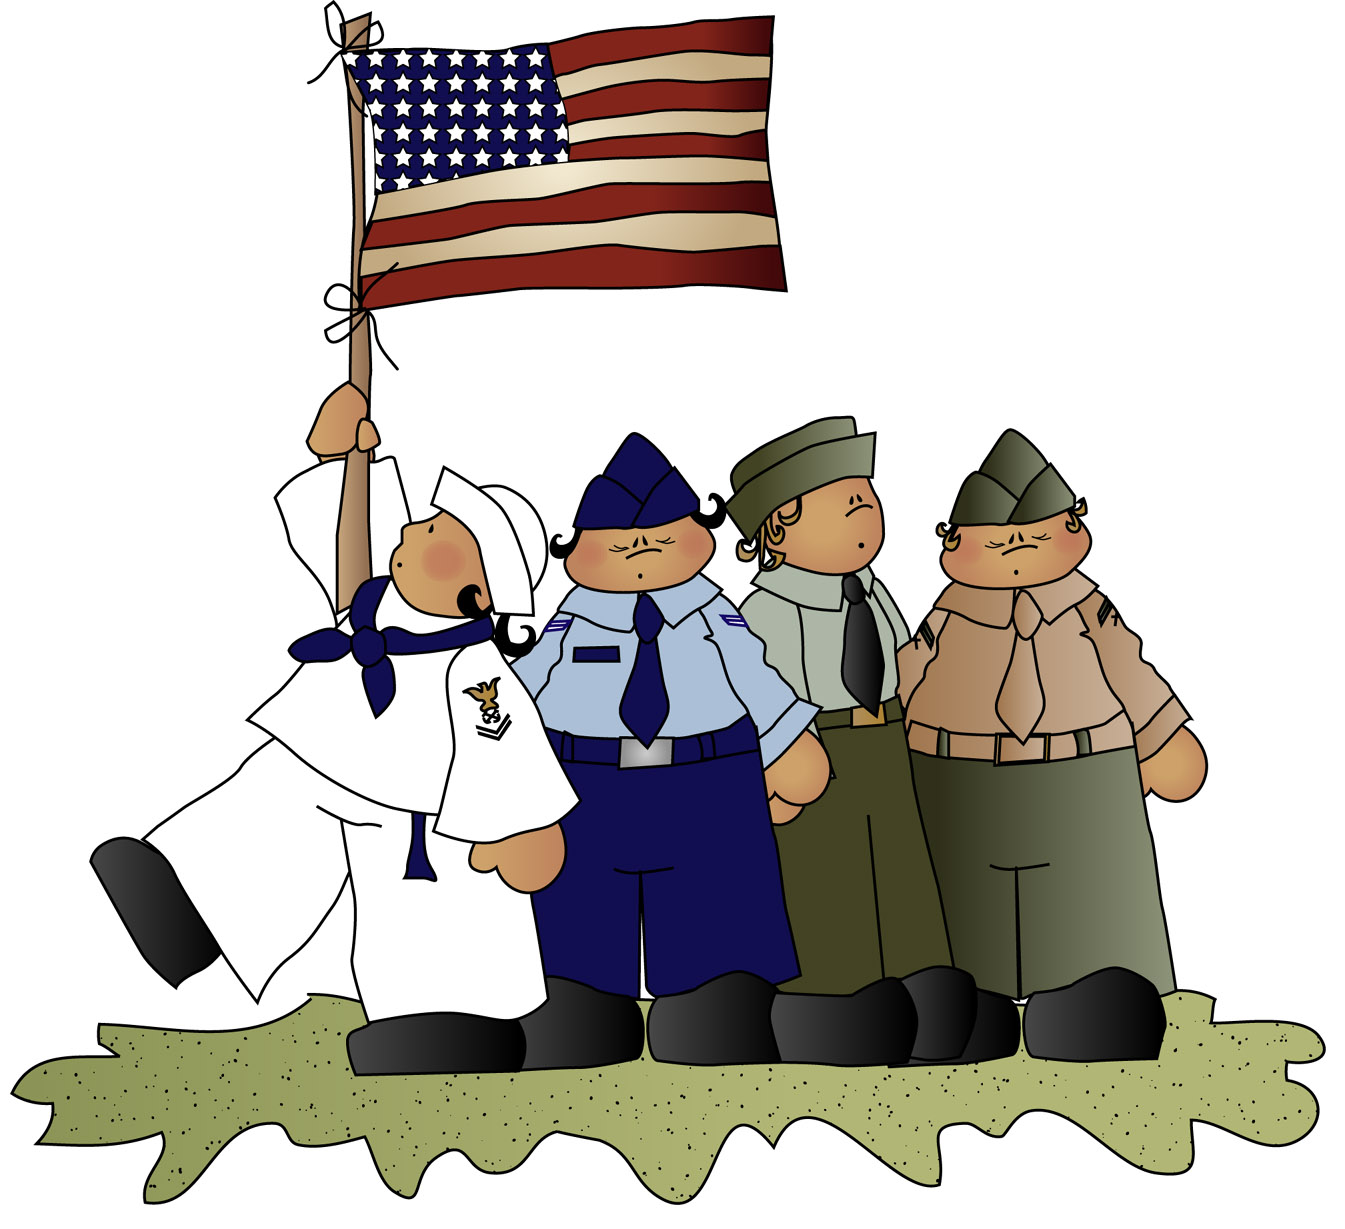 Free cliparts for veteran day vector freeuse download Free Veterans Day Cliparts, Download Free Clip Art, Free Clip Art on ... vector freeuse download